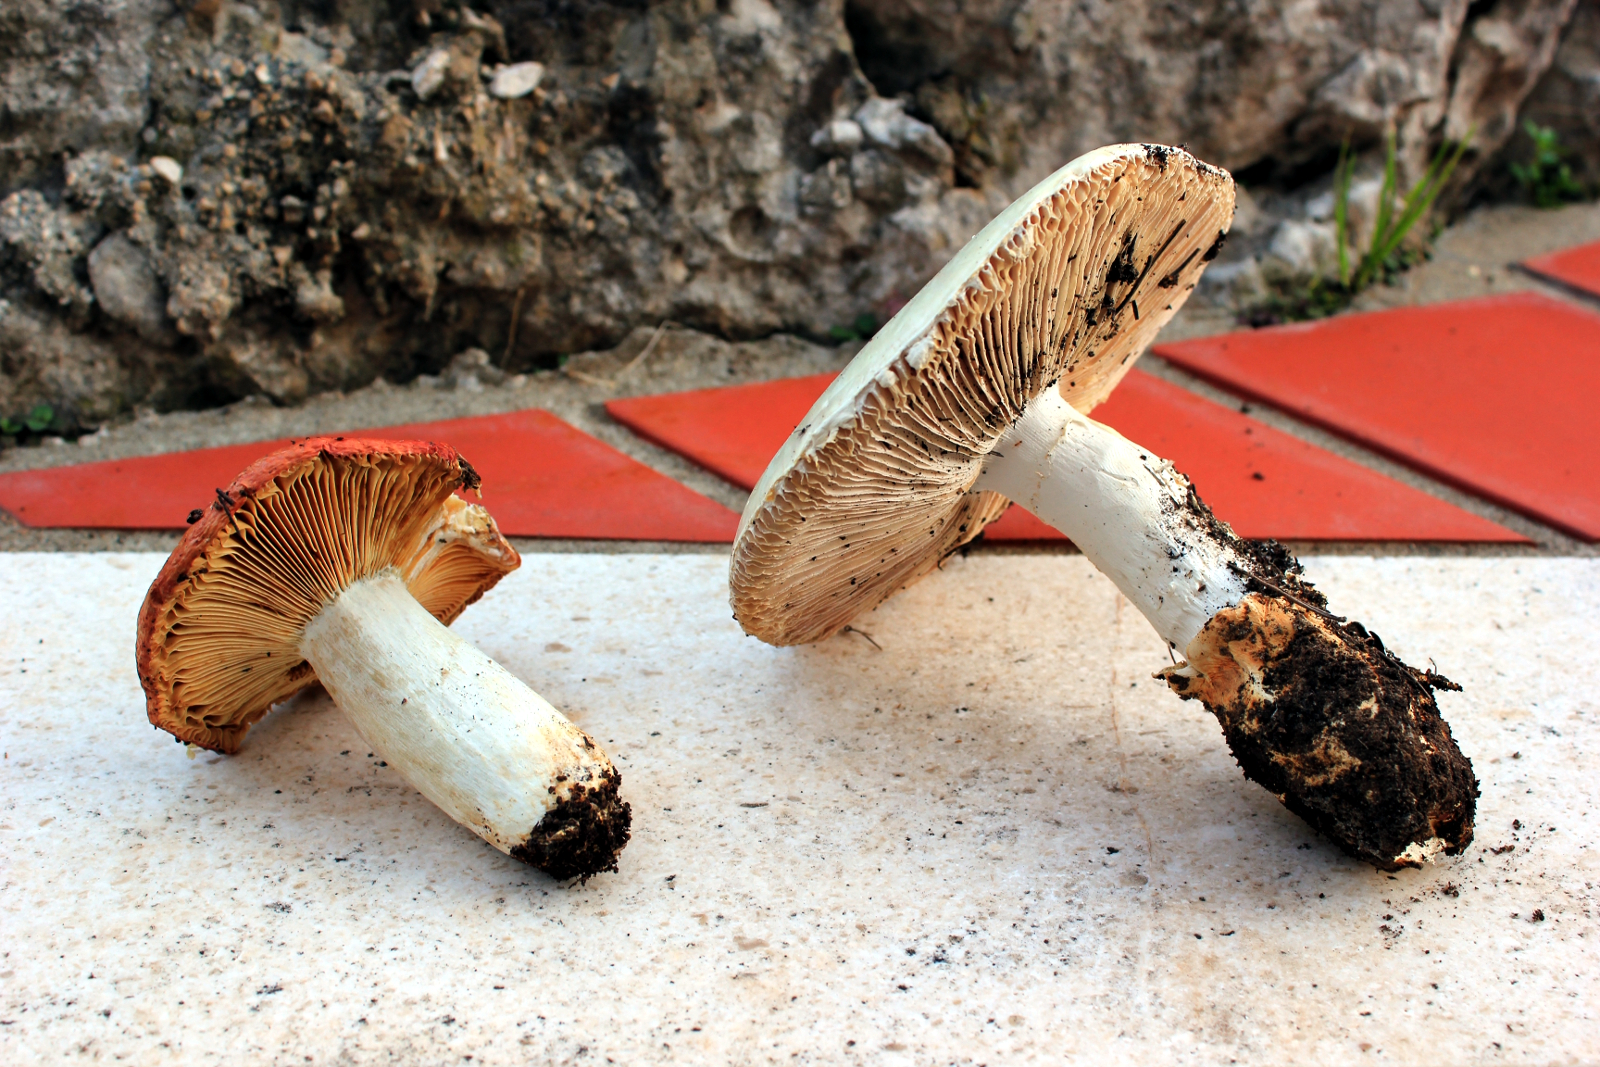 Russula aurea and Amanita virosa, side by side